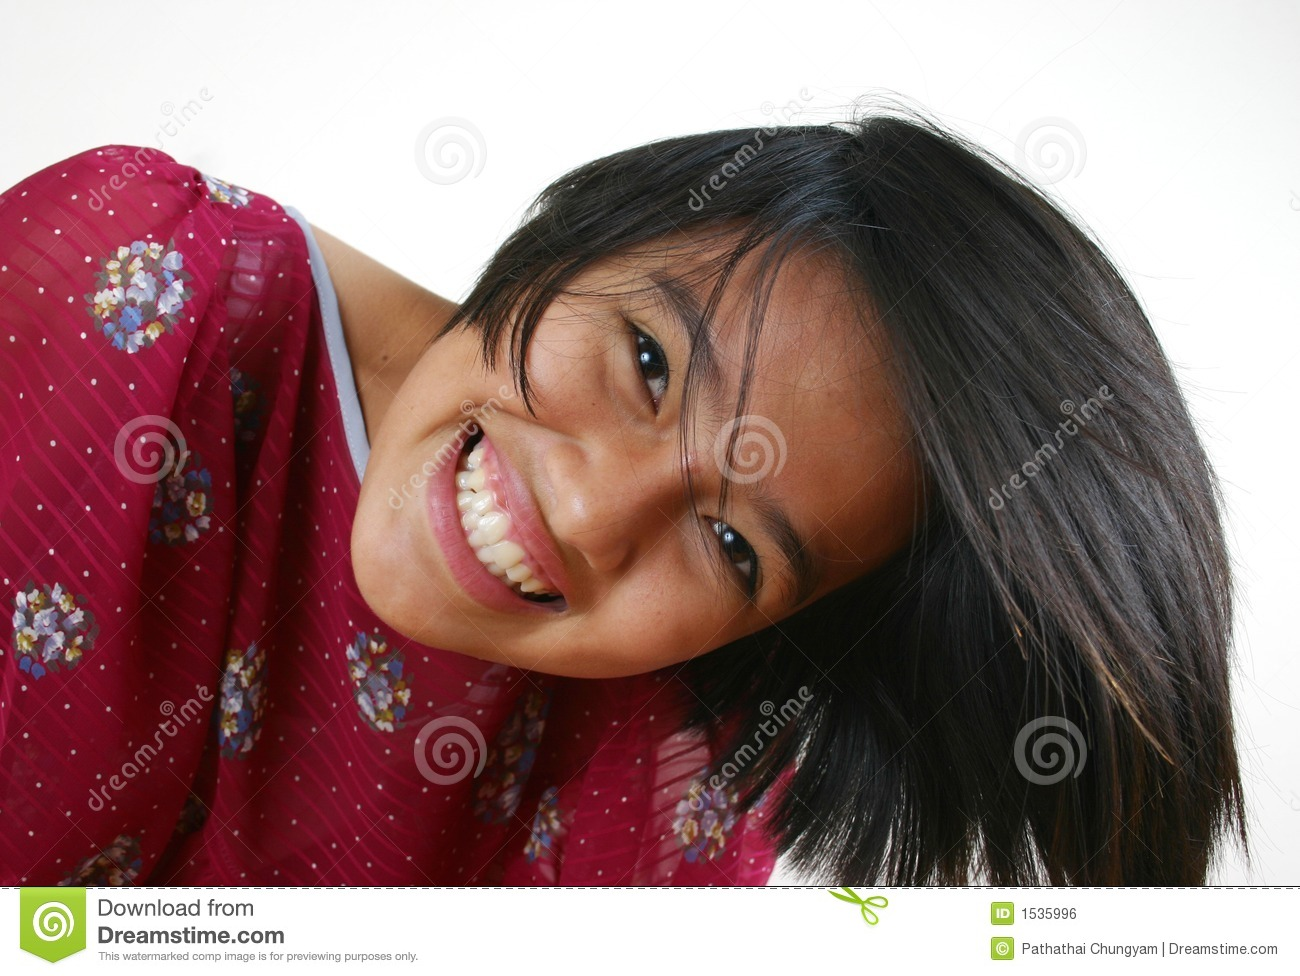 Asian Teen Series Stock Photo Image Of Beauty, Young - 1535996-9709